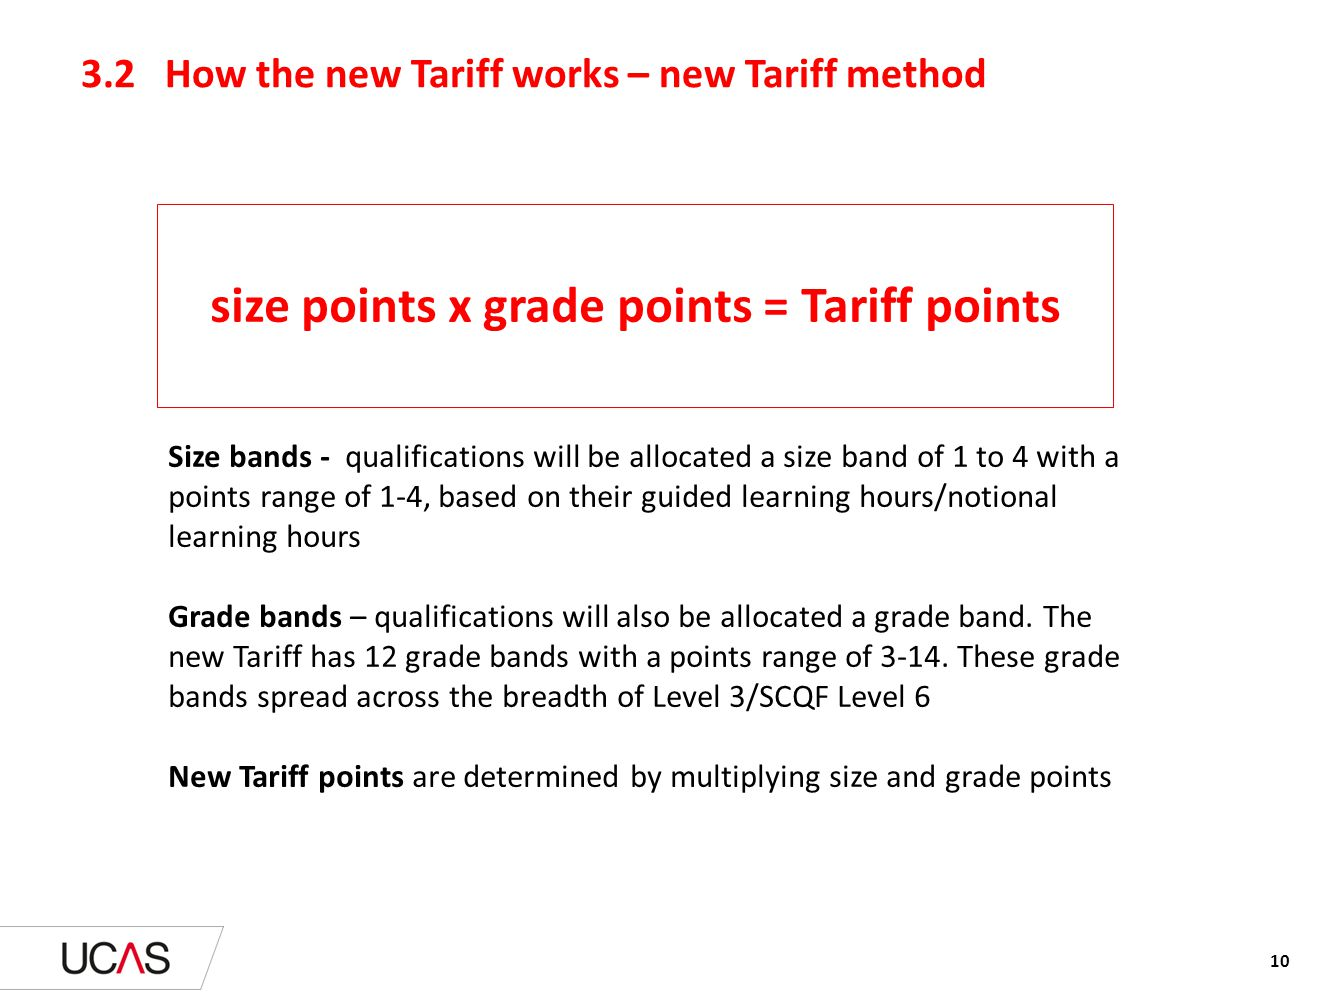 3.2 How the new Tariff works – new Tariff method